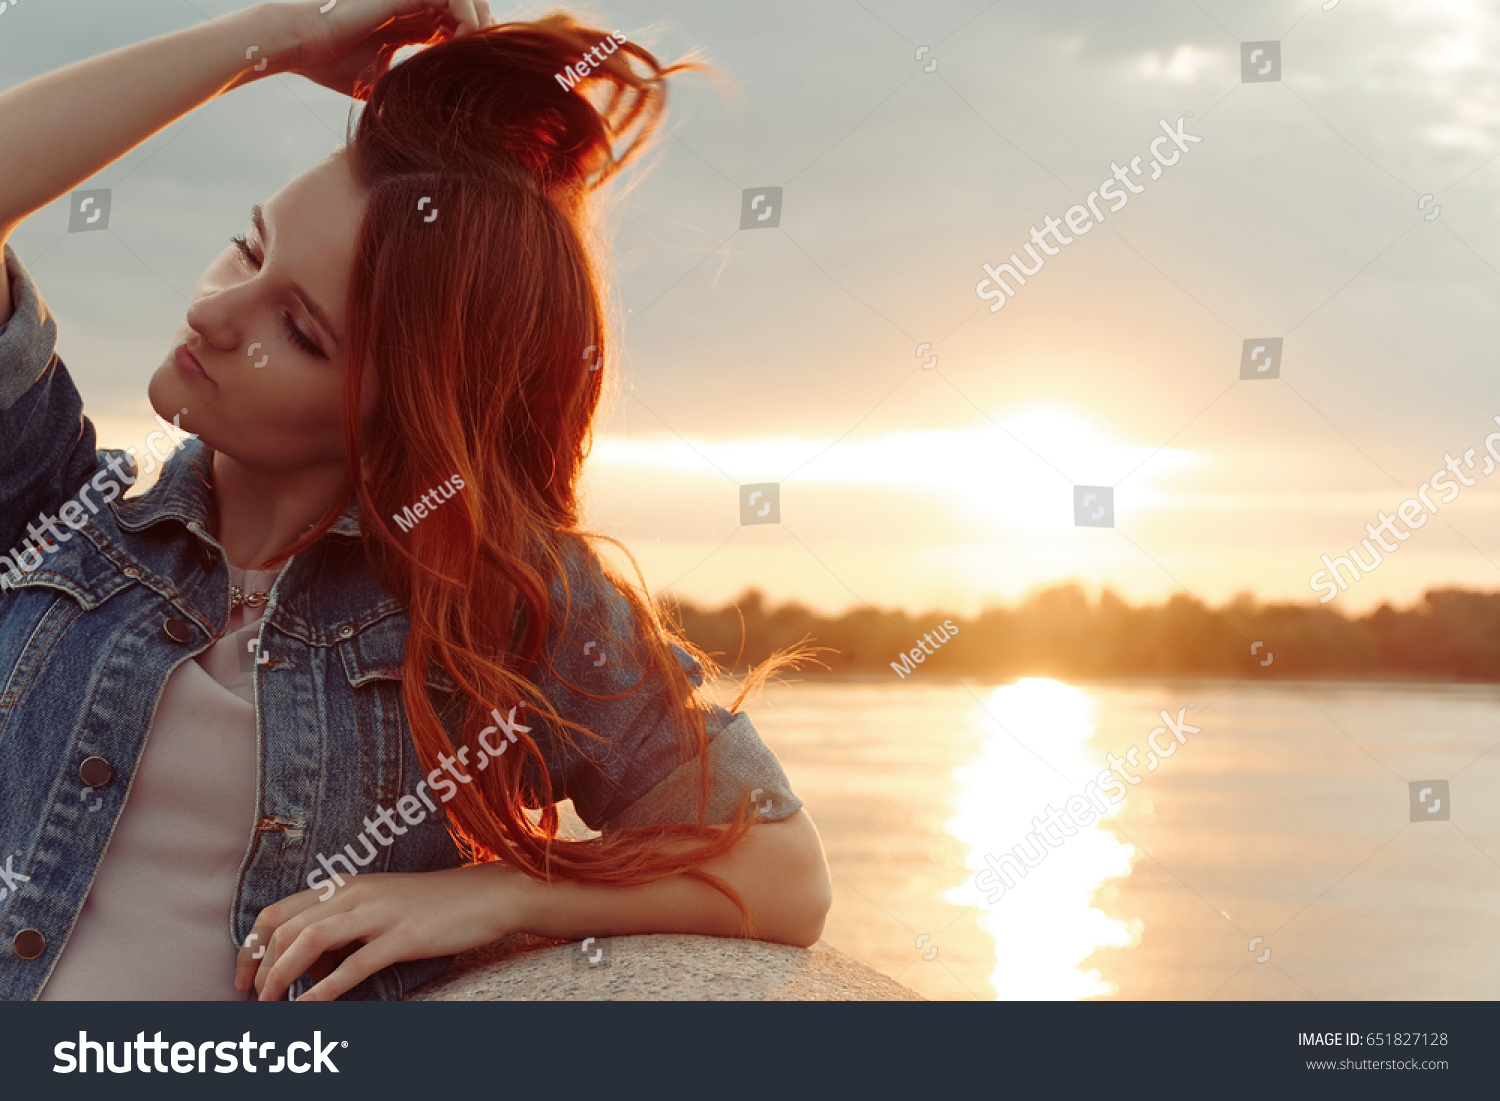 stock-photo-red-haired-woman-touch-her-l